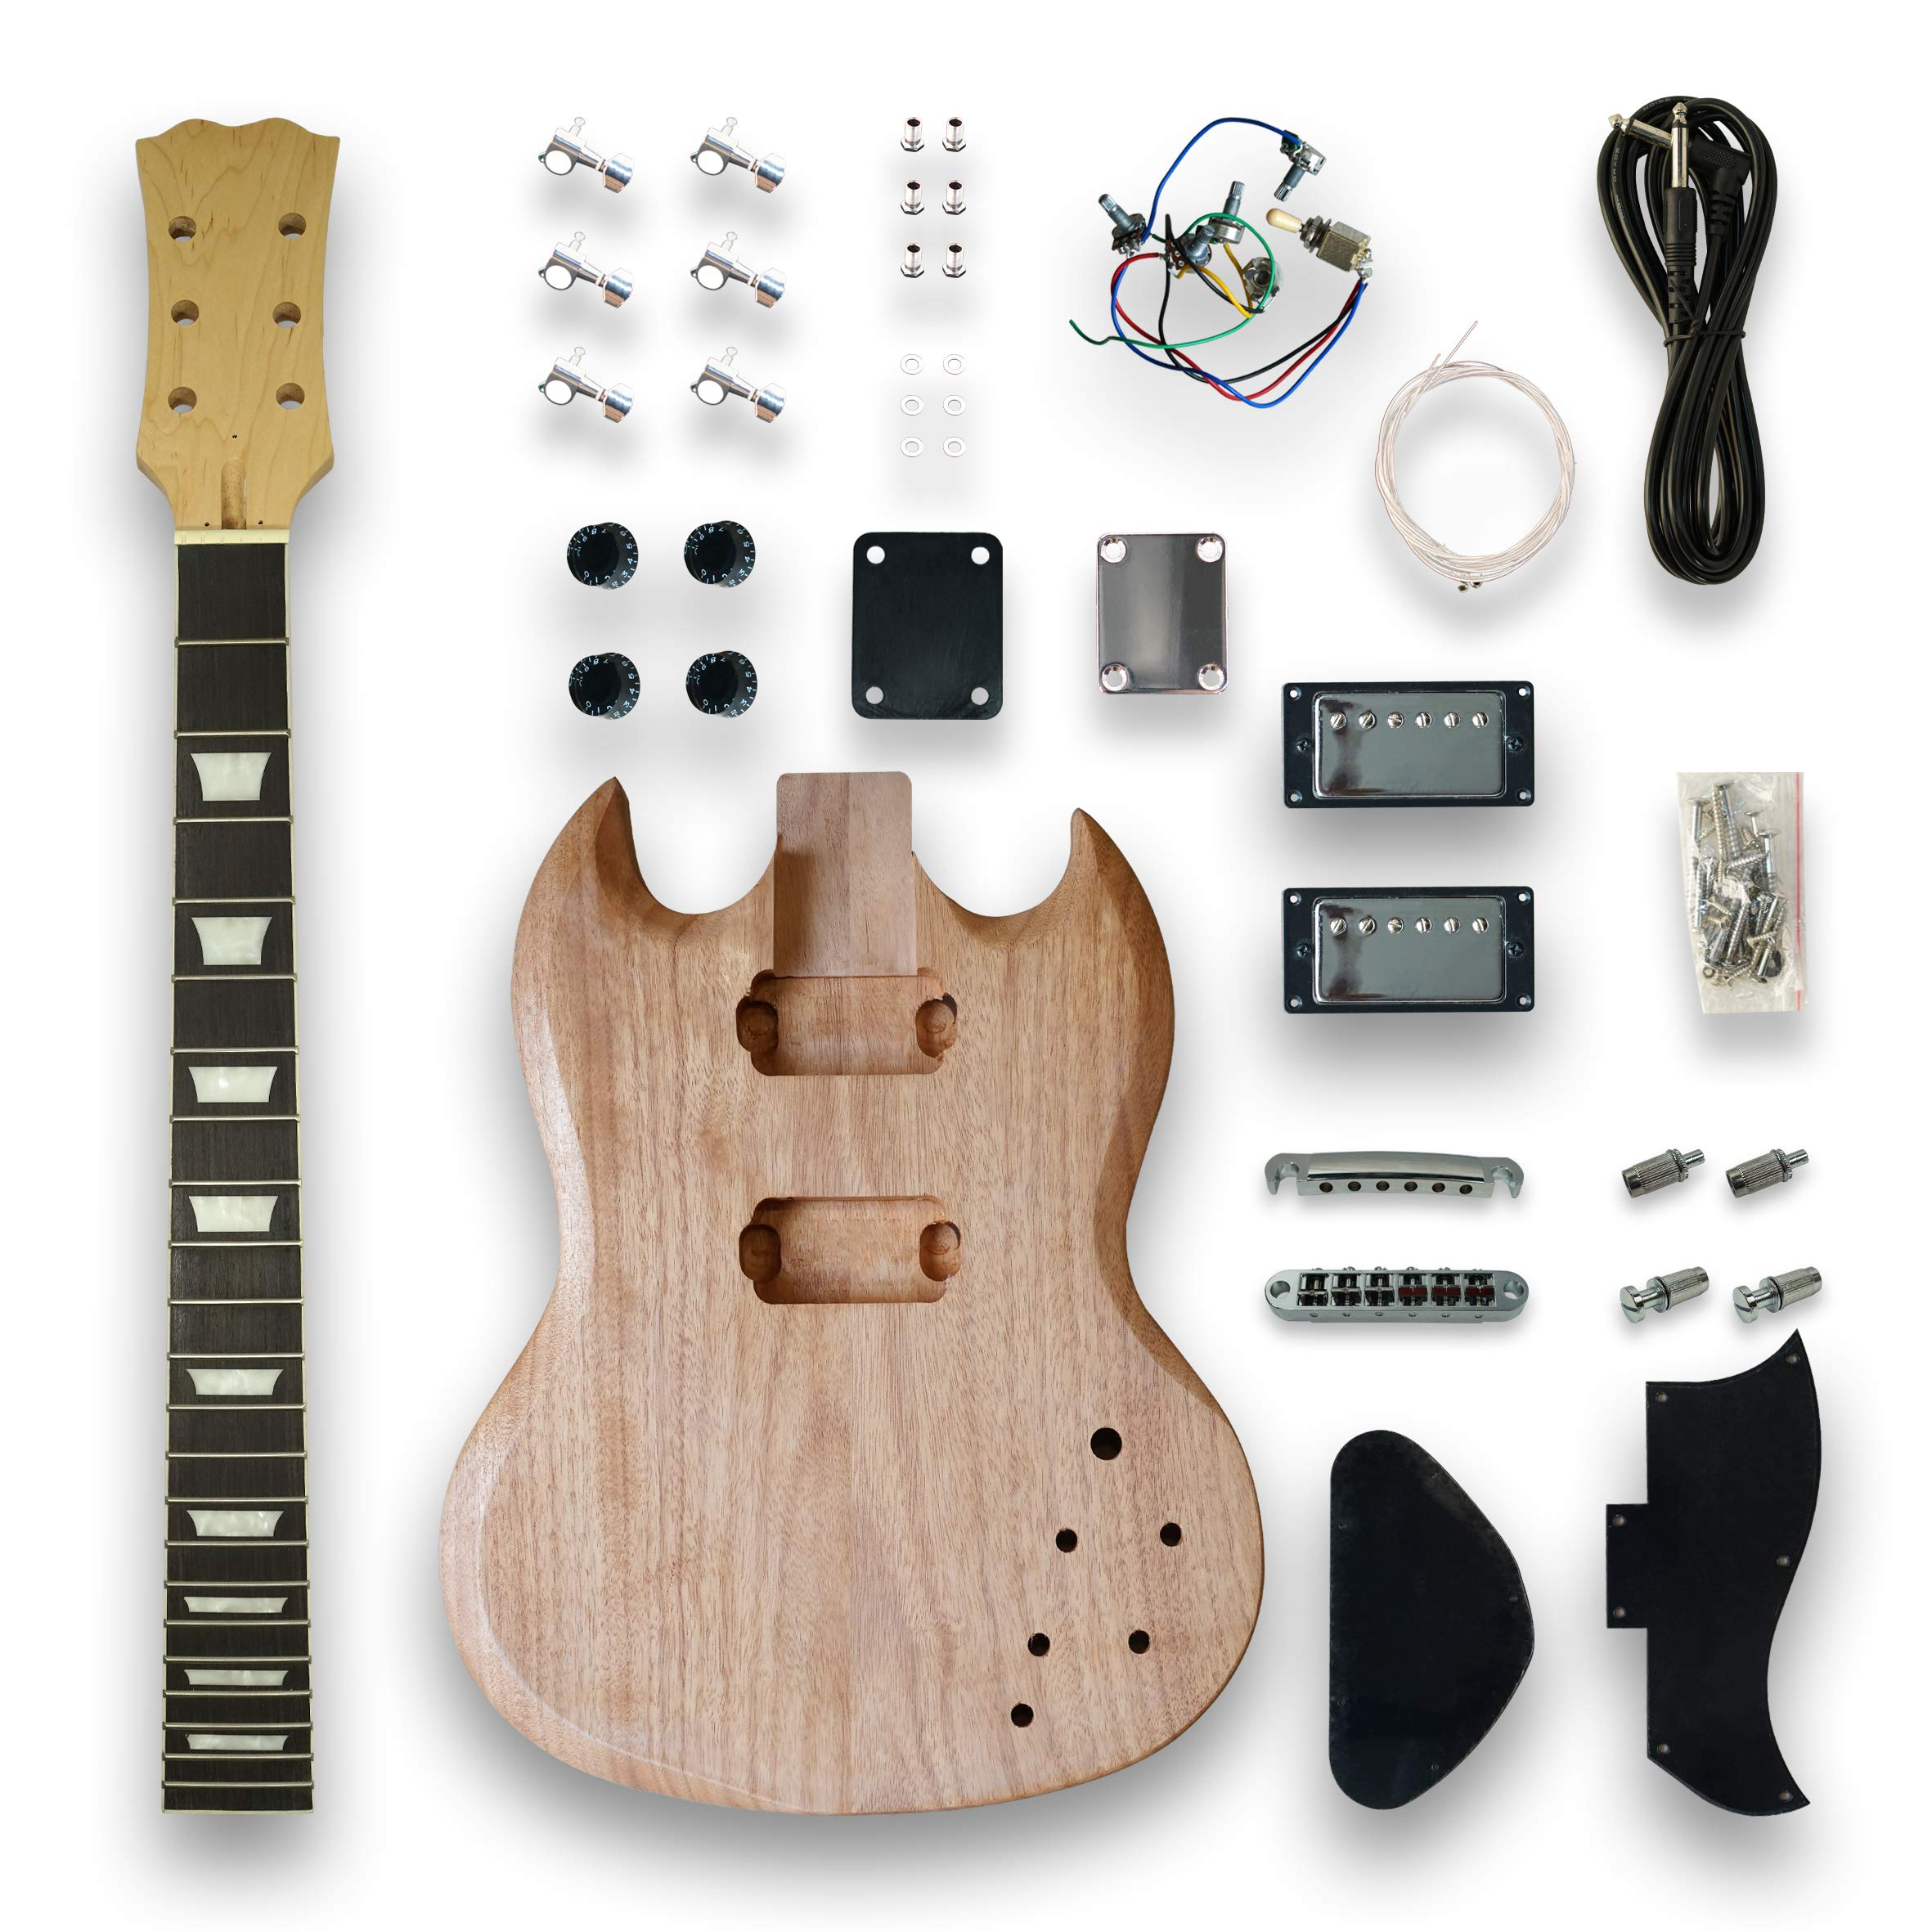 DIY Electric Guitar Kits for SG Style Guitar, okoume wood Body by Unknown